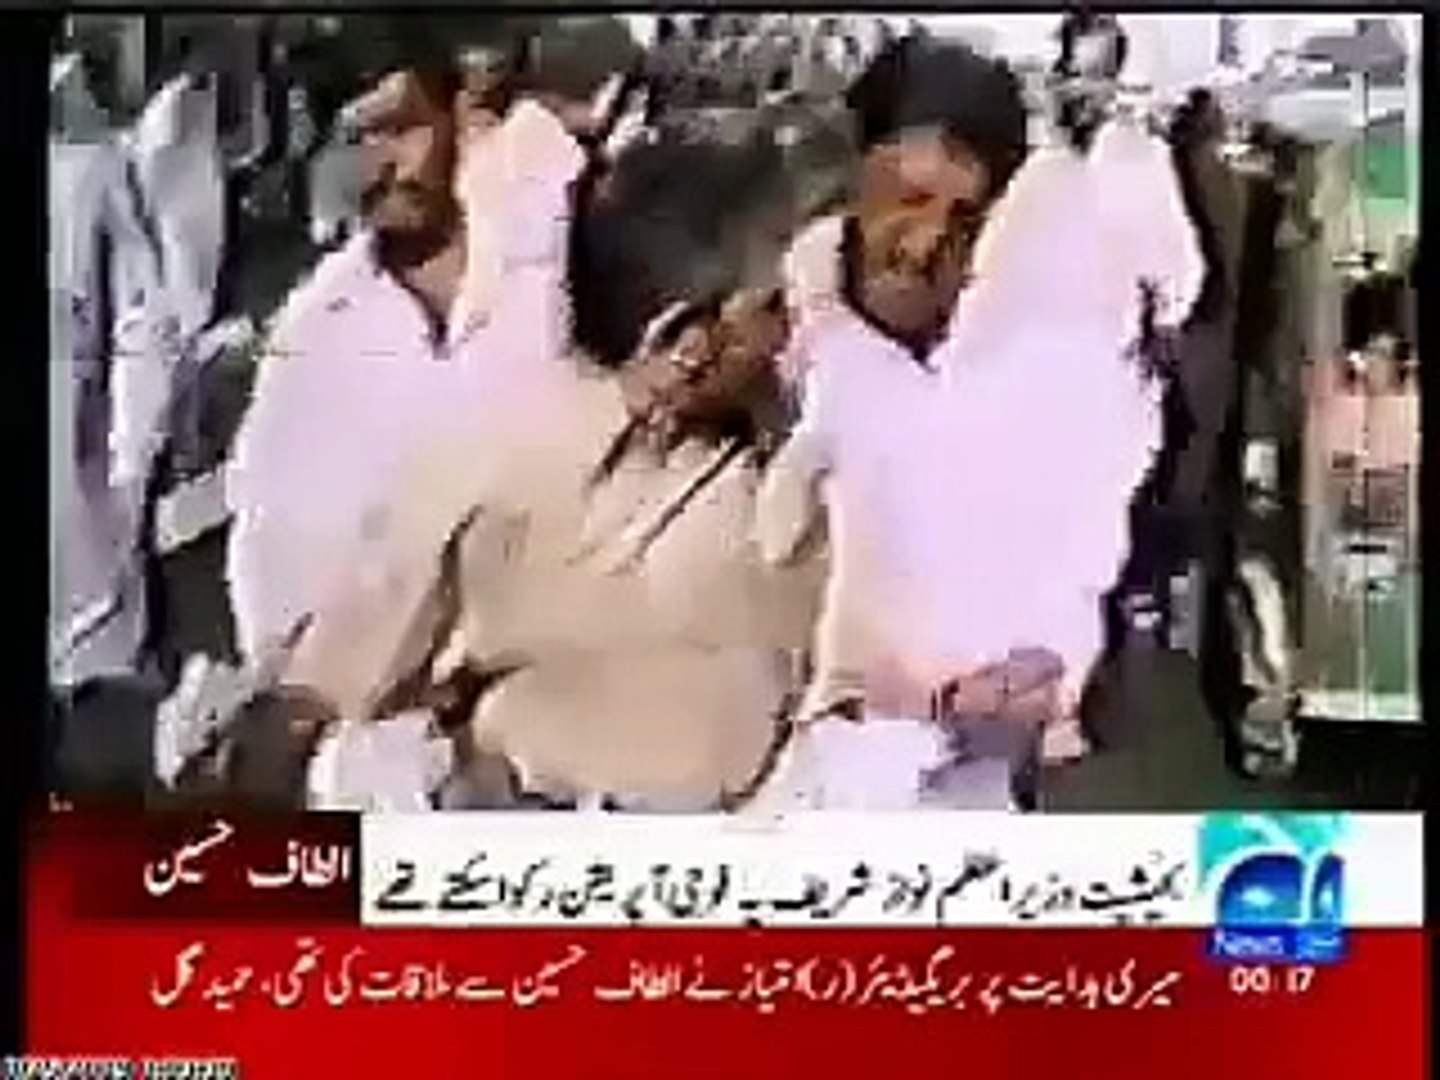 Farooq Sattar Being Dragged By Police During 1992 Operation - Will History Repeat Again